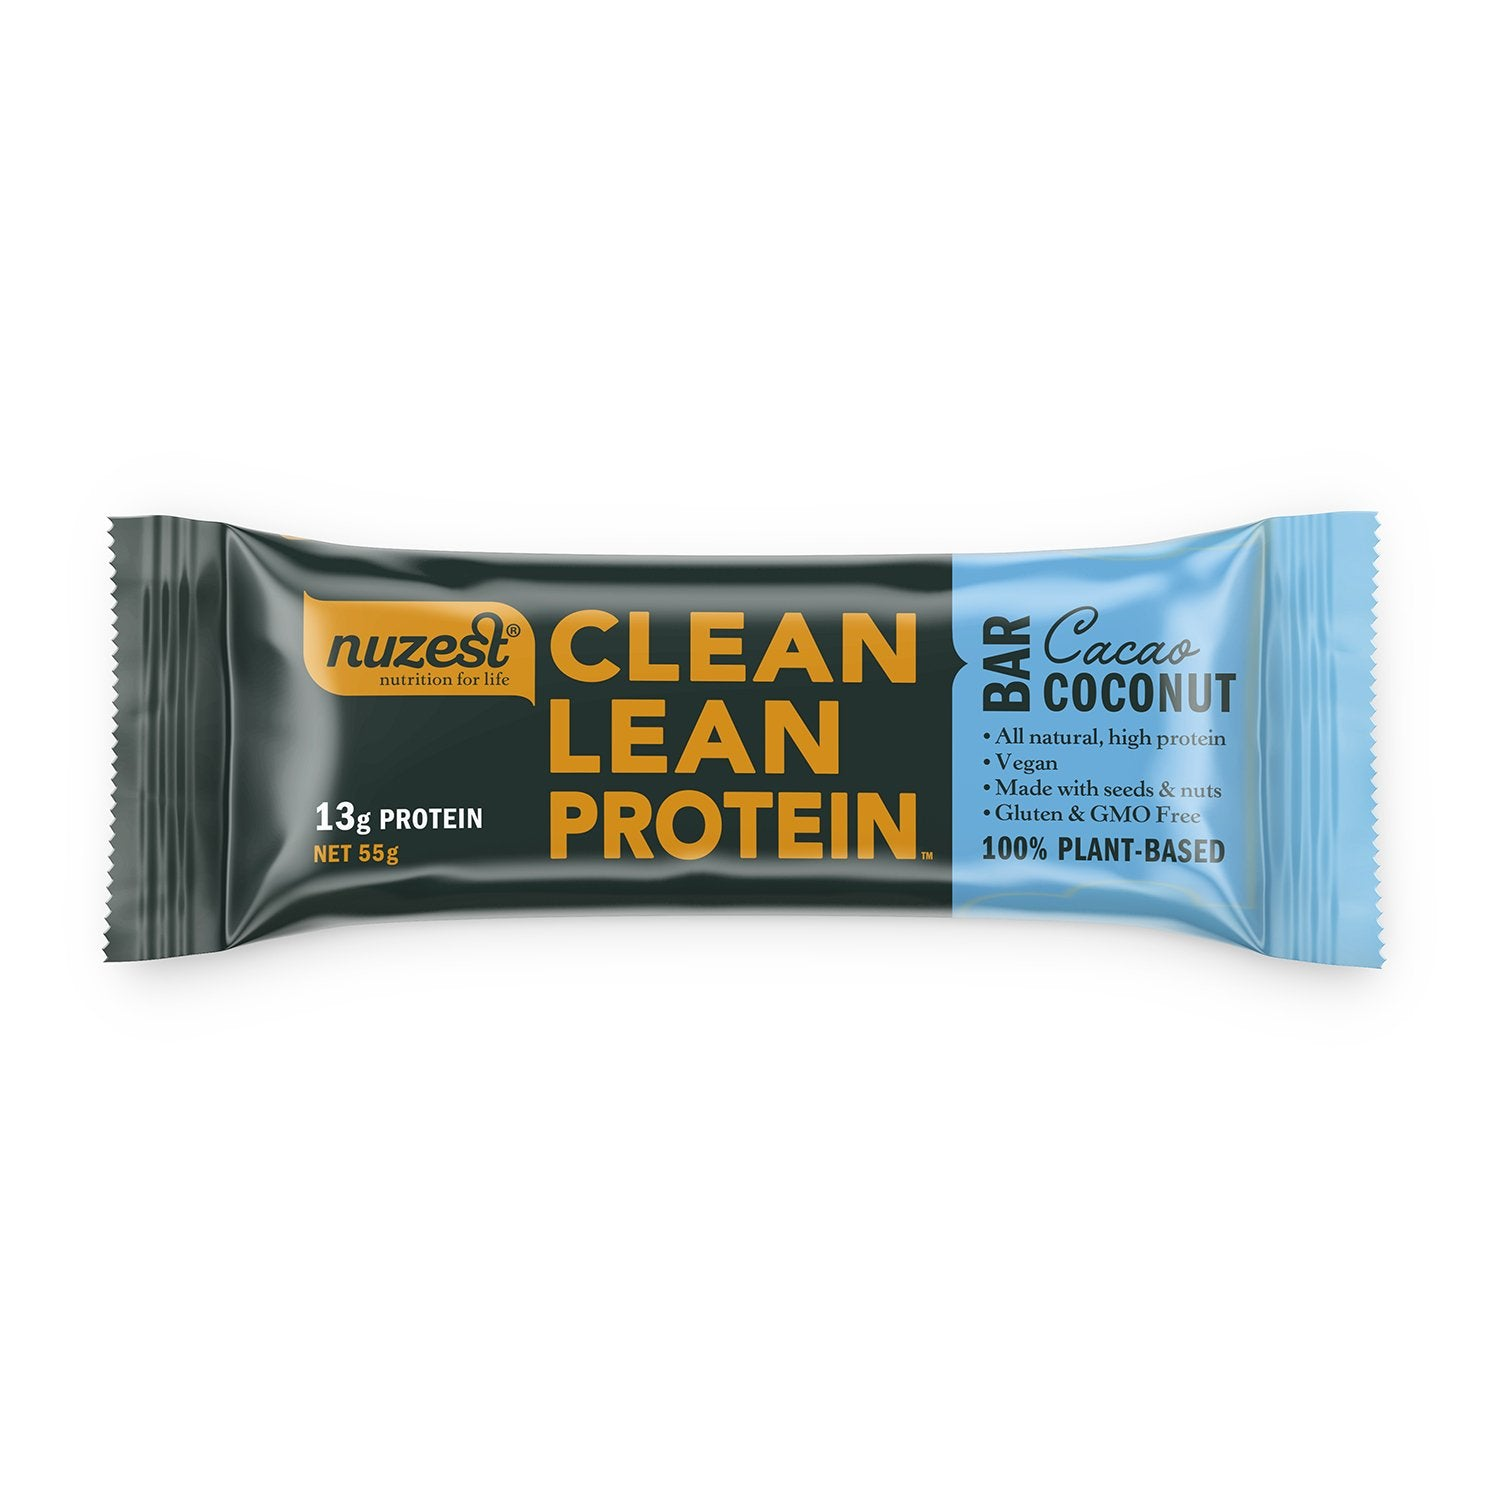 Clean Lean Protein Bars